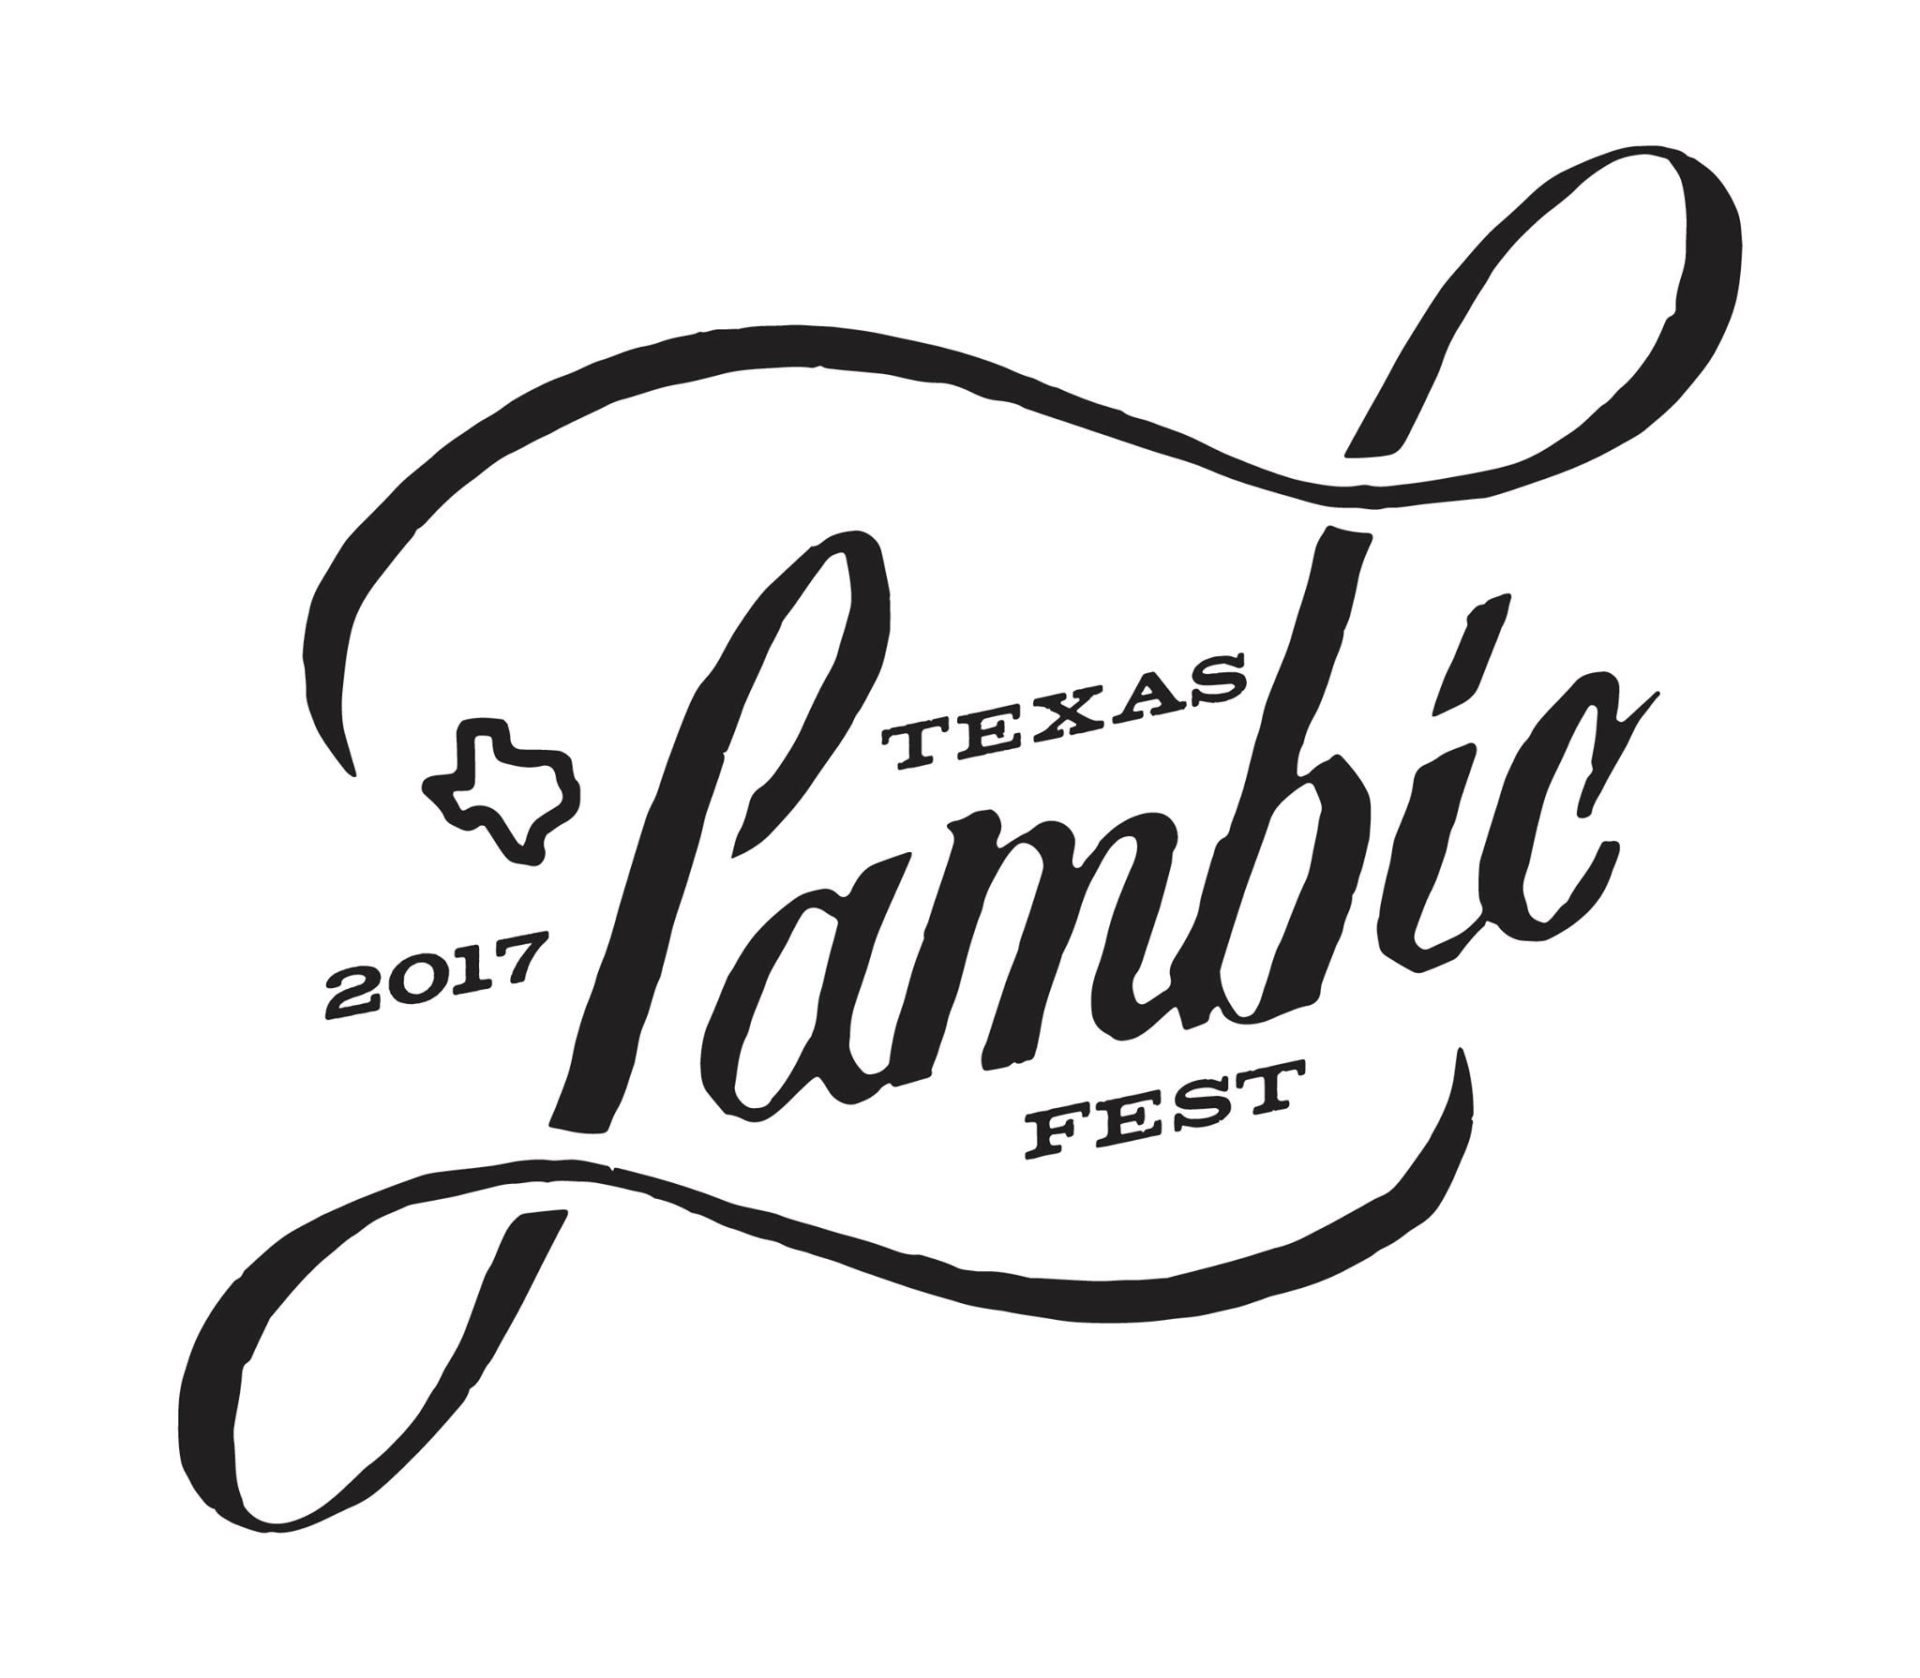 Austin Craft Beer Events July 31